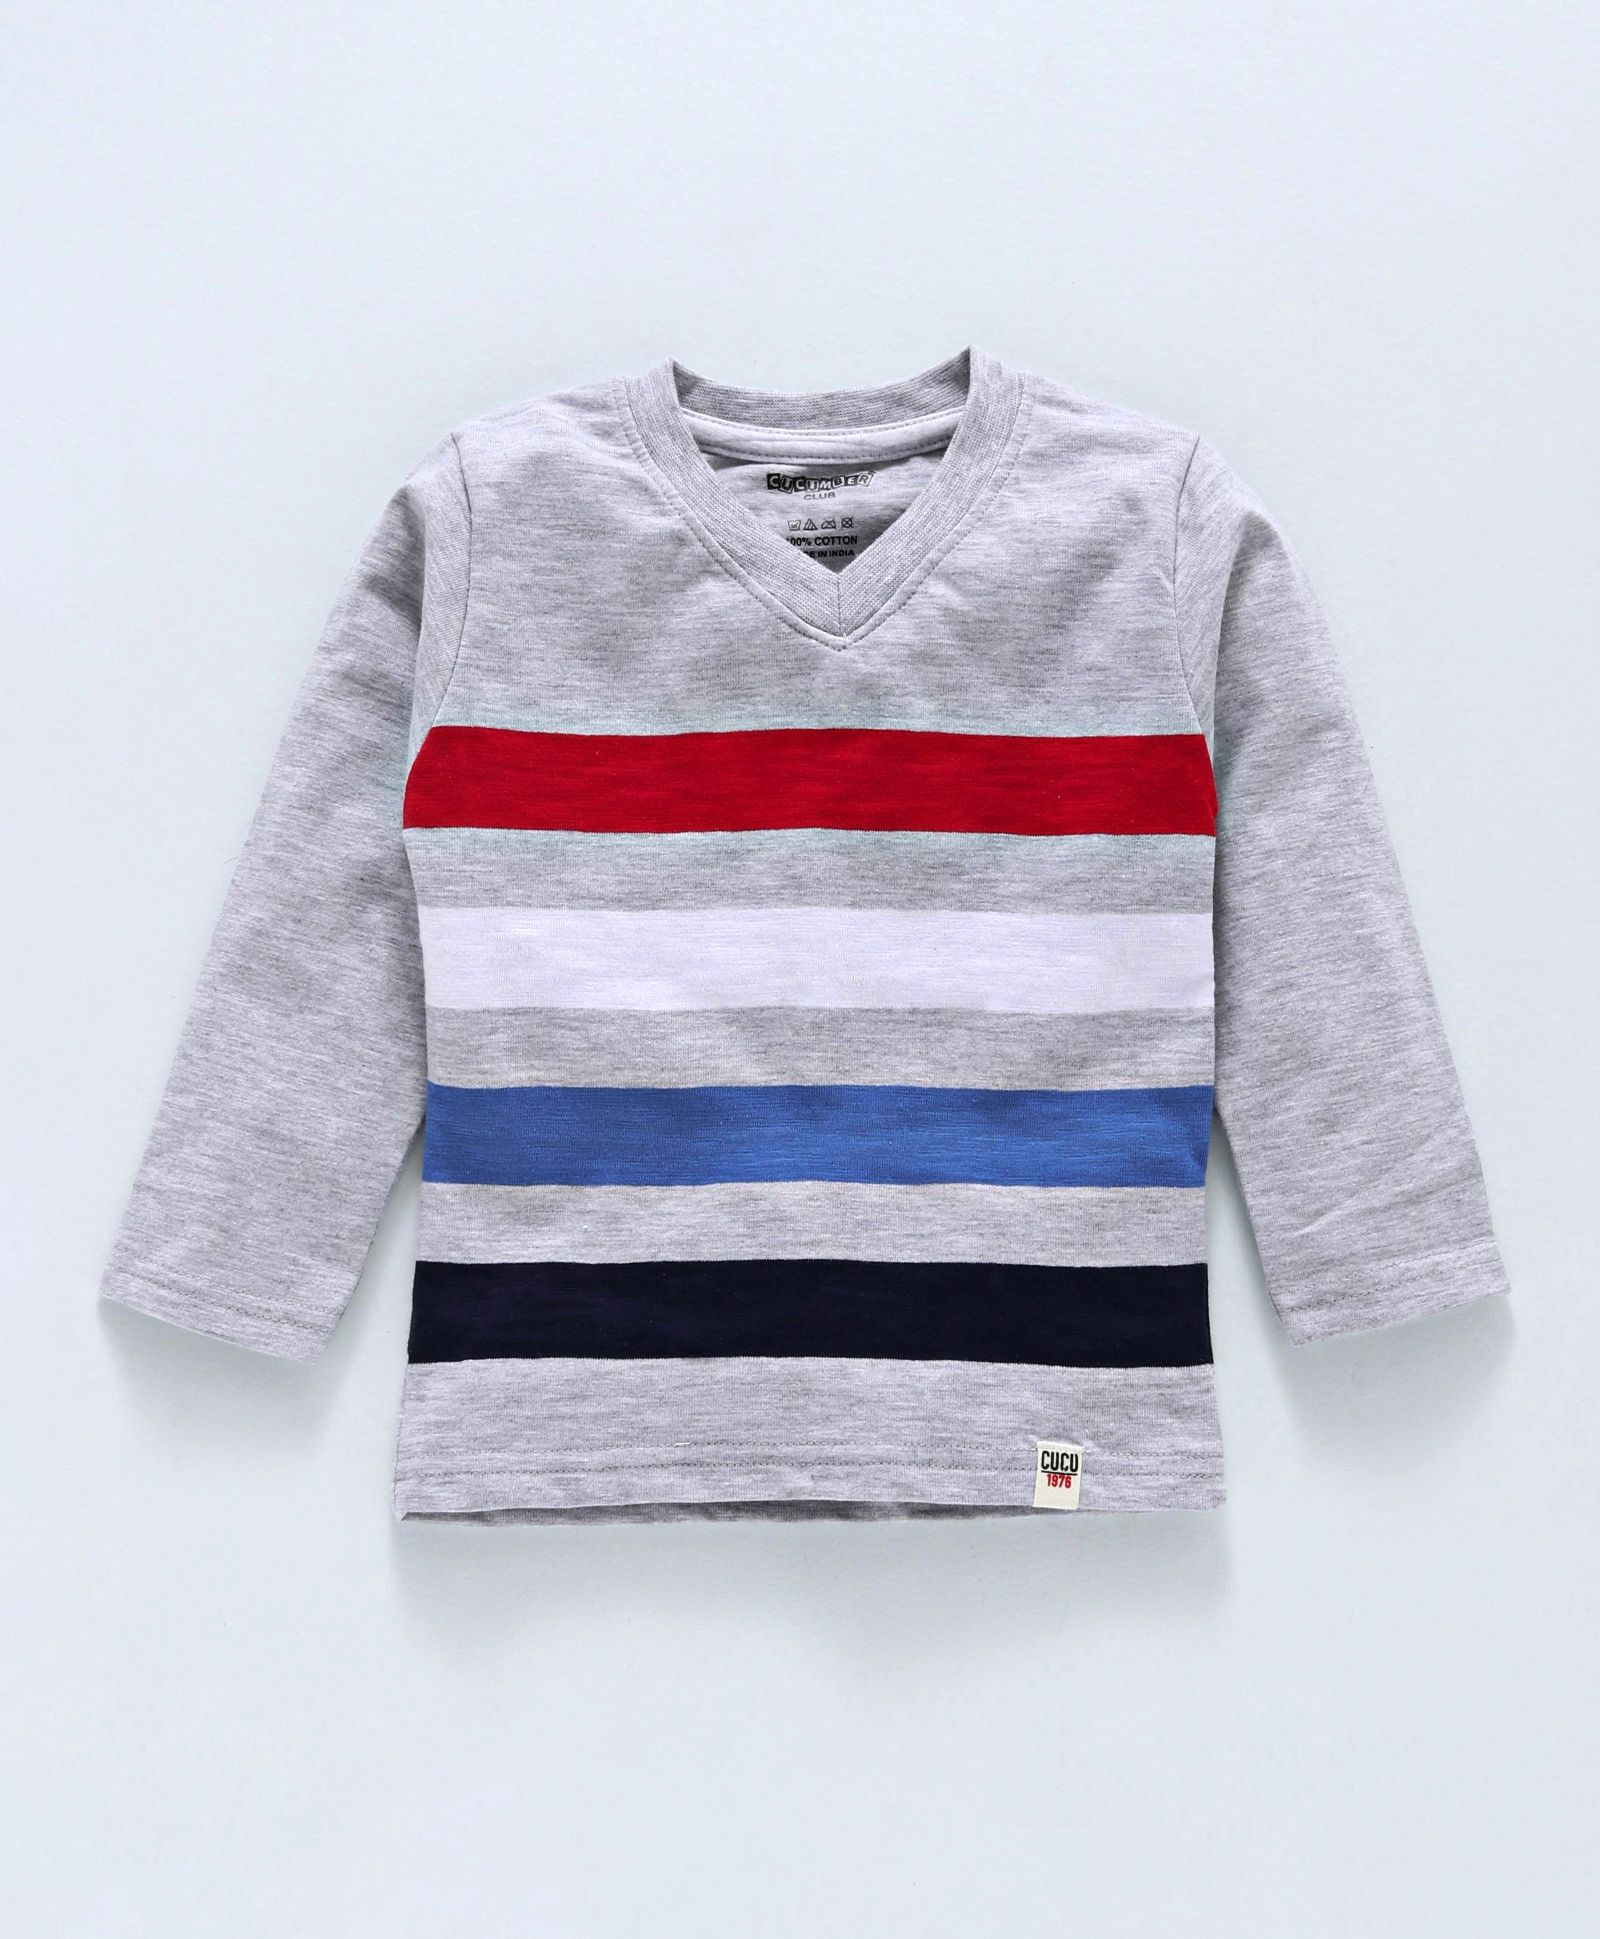 564d6fec8b Buy Cucumber Full Sleeves Striped TShirt Grey Red White for Boys ...